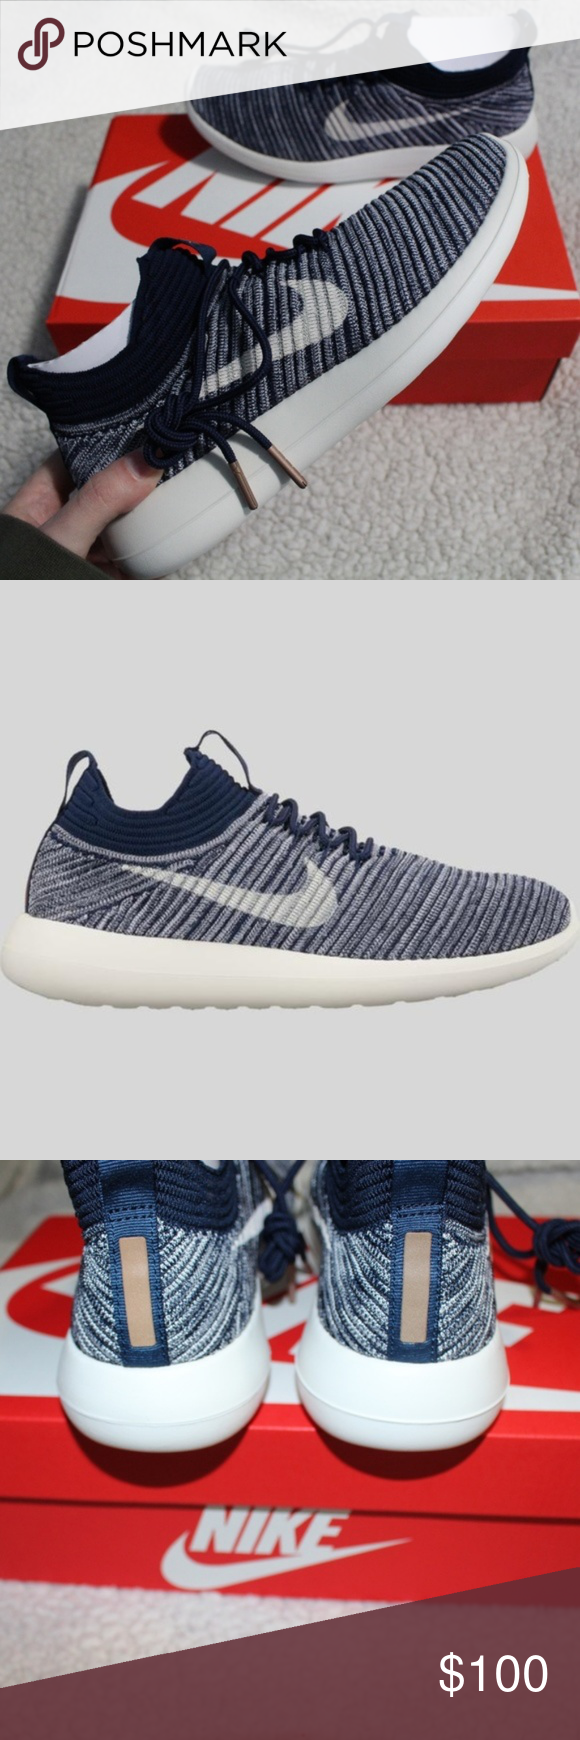 f2c39f4d1be6 NEW Nike Women s Roshe Two Flyknit V2 Sneakers Selling brand new with box  no lid Nike